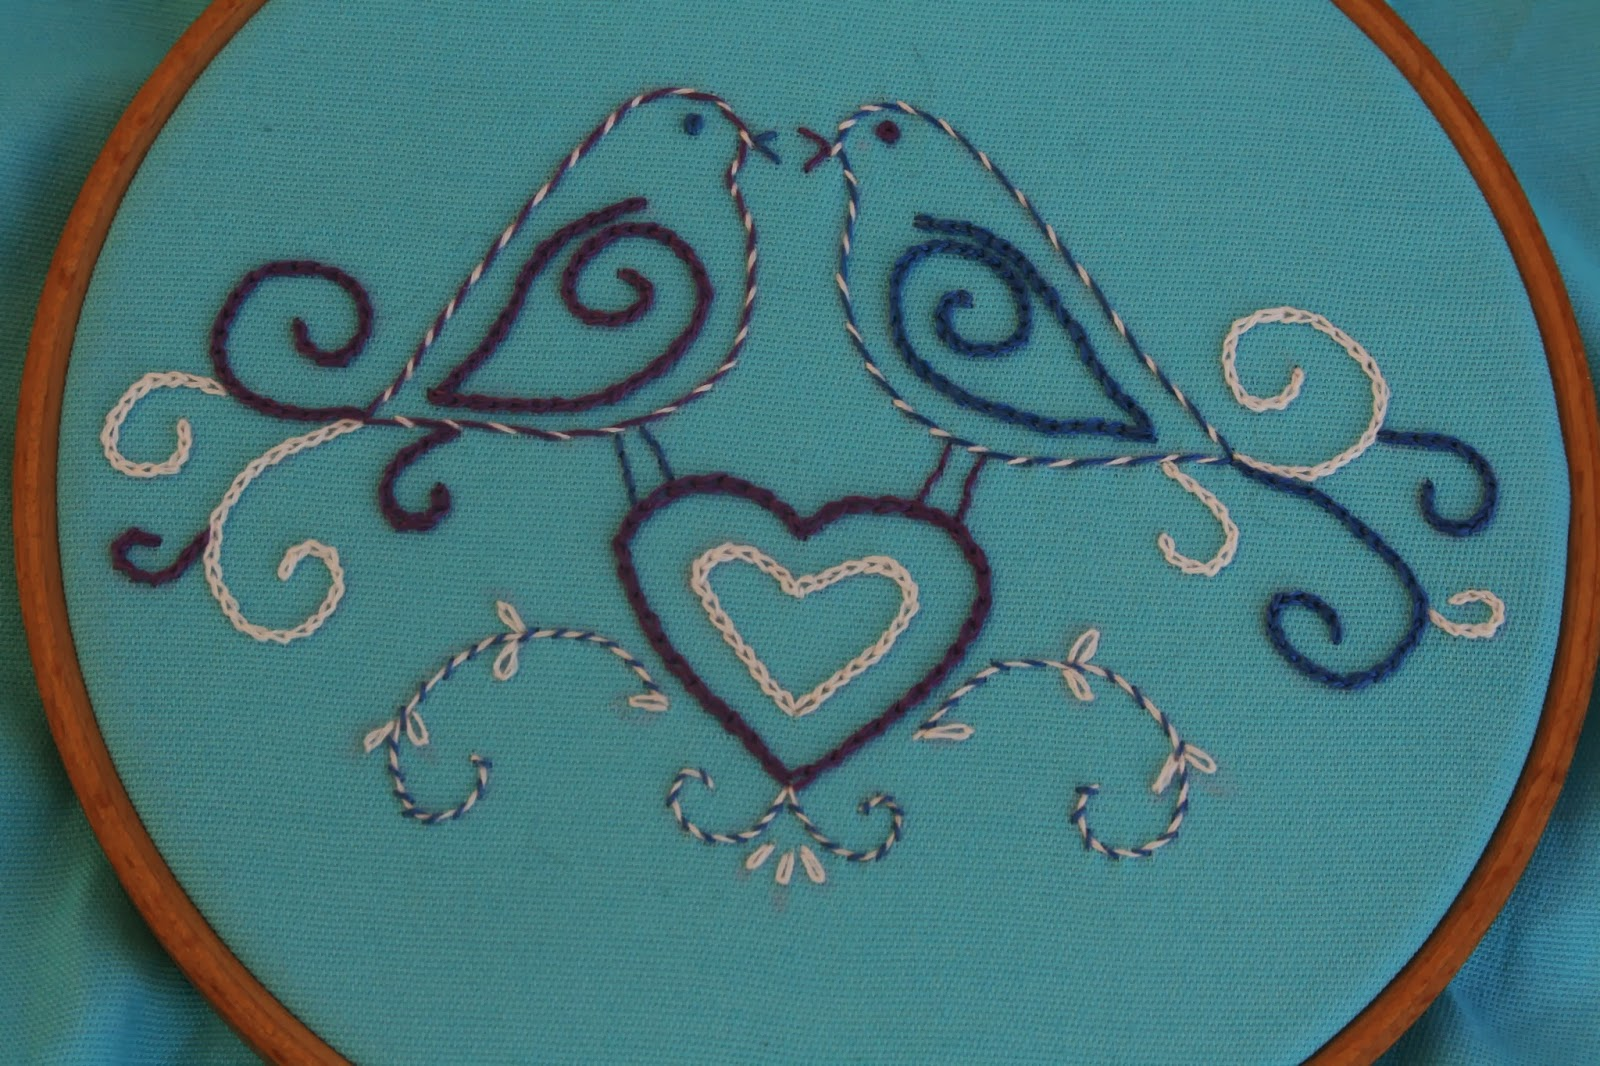 Rays Place Designs A Little Bit Of Embroidery